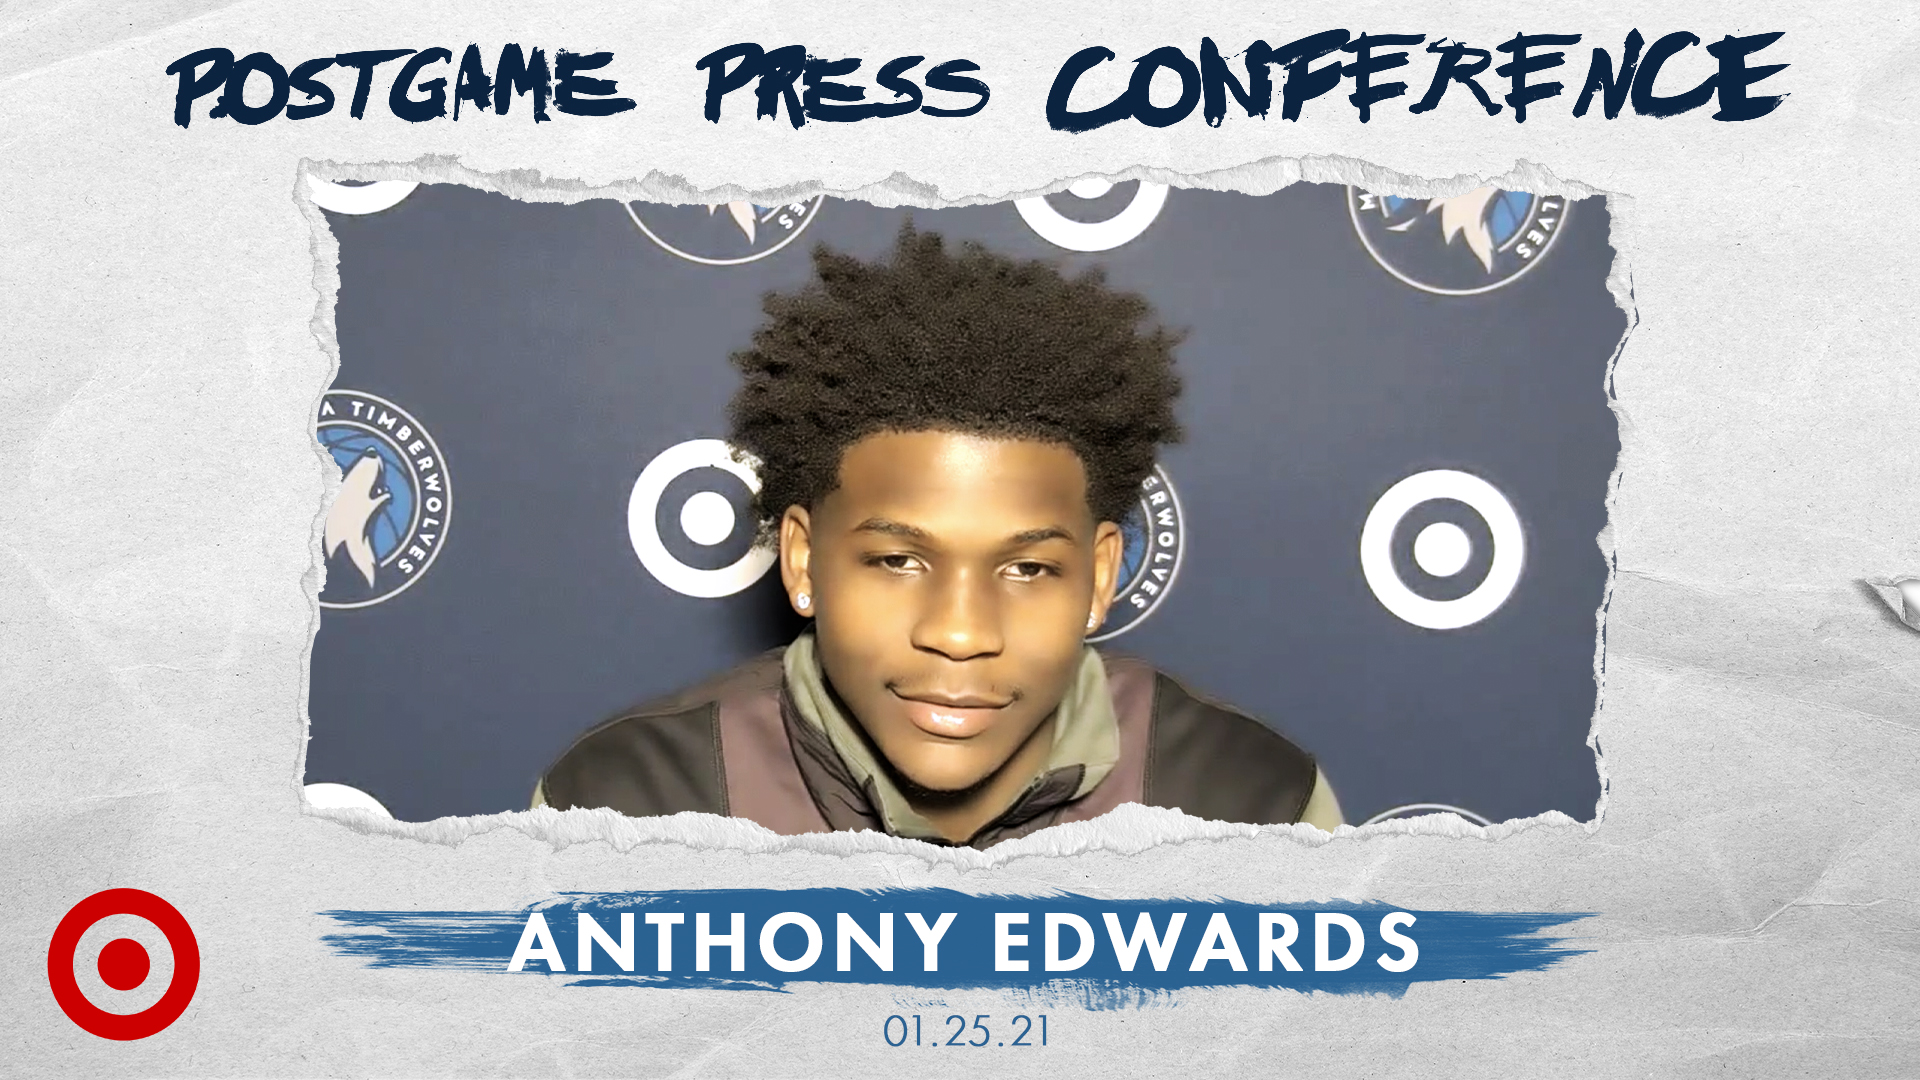 Anthony Edwards Postgame Press Conference - January 25, 2021